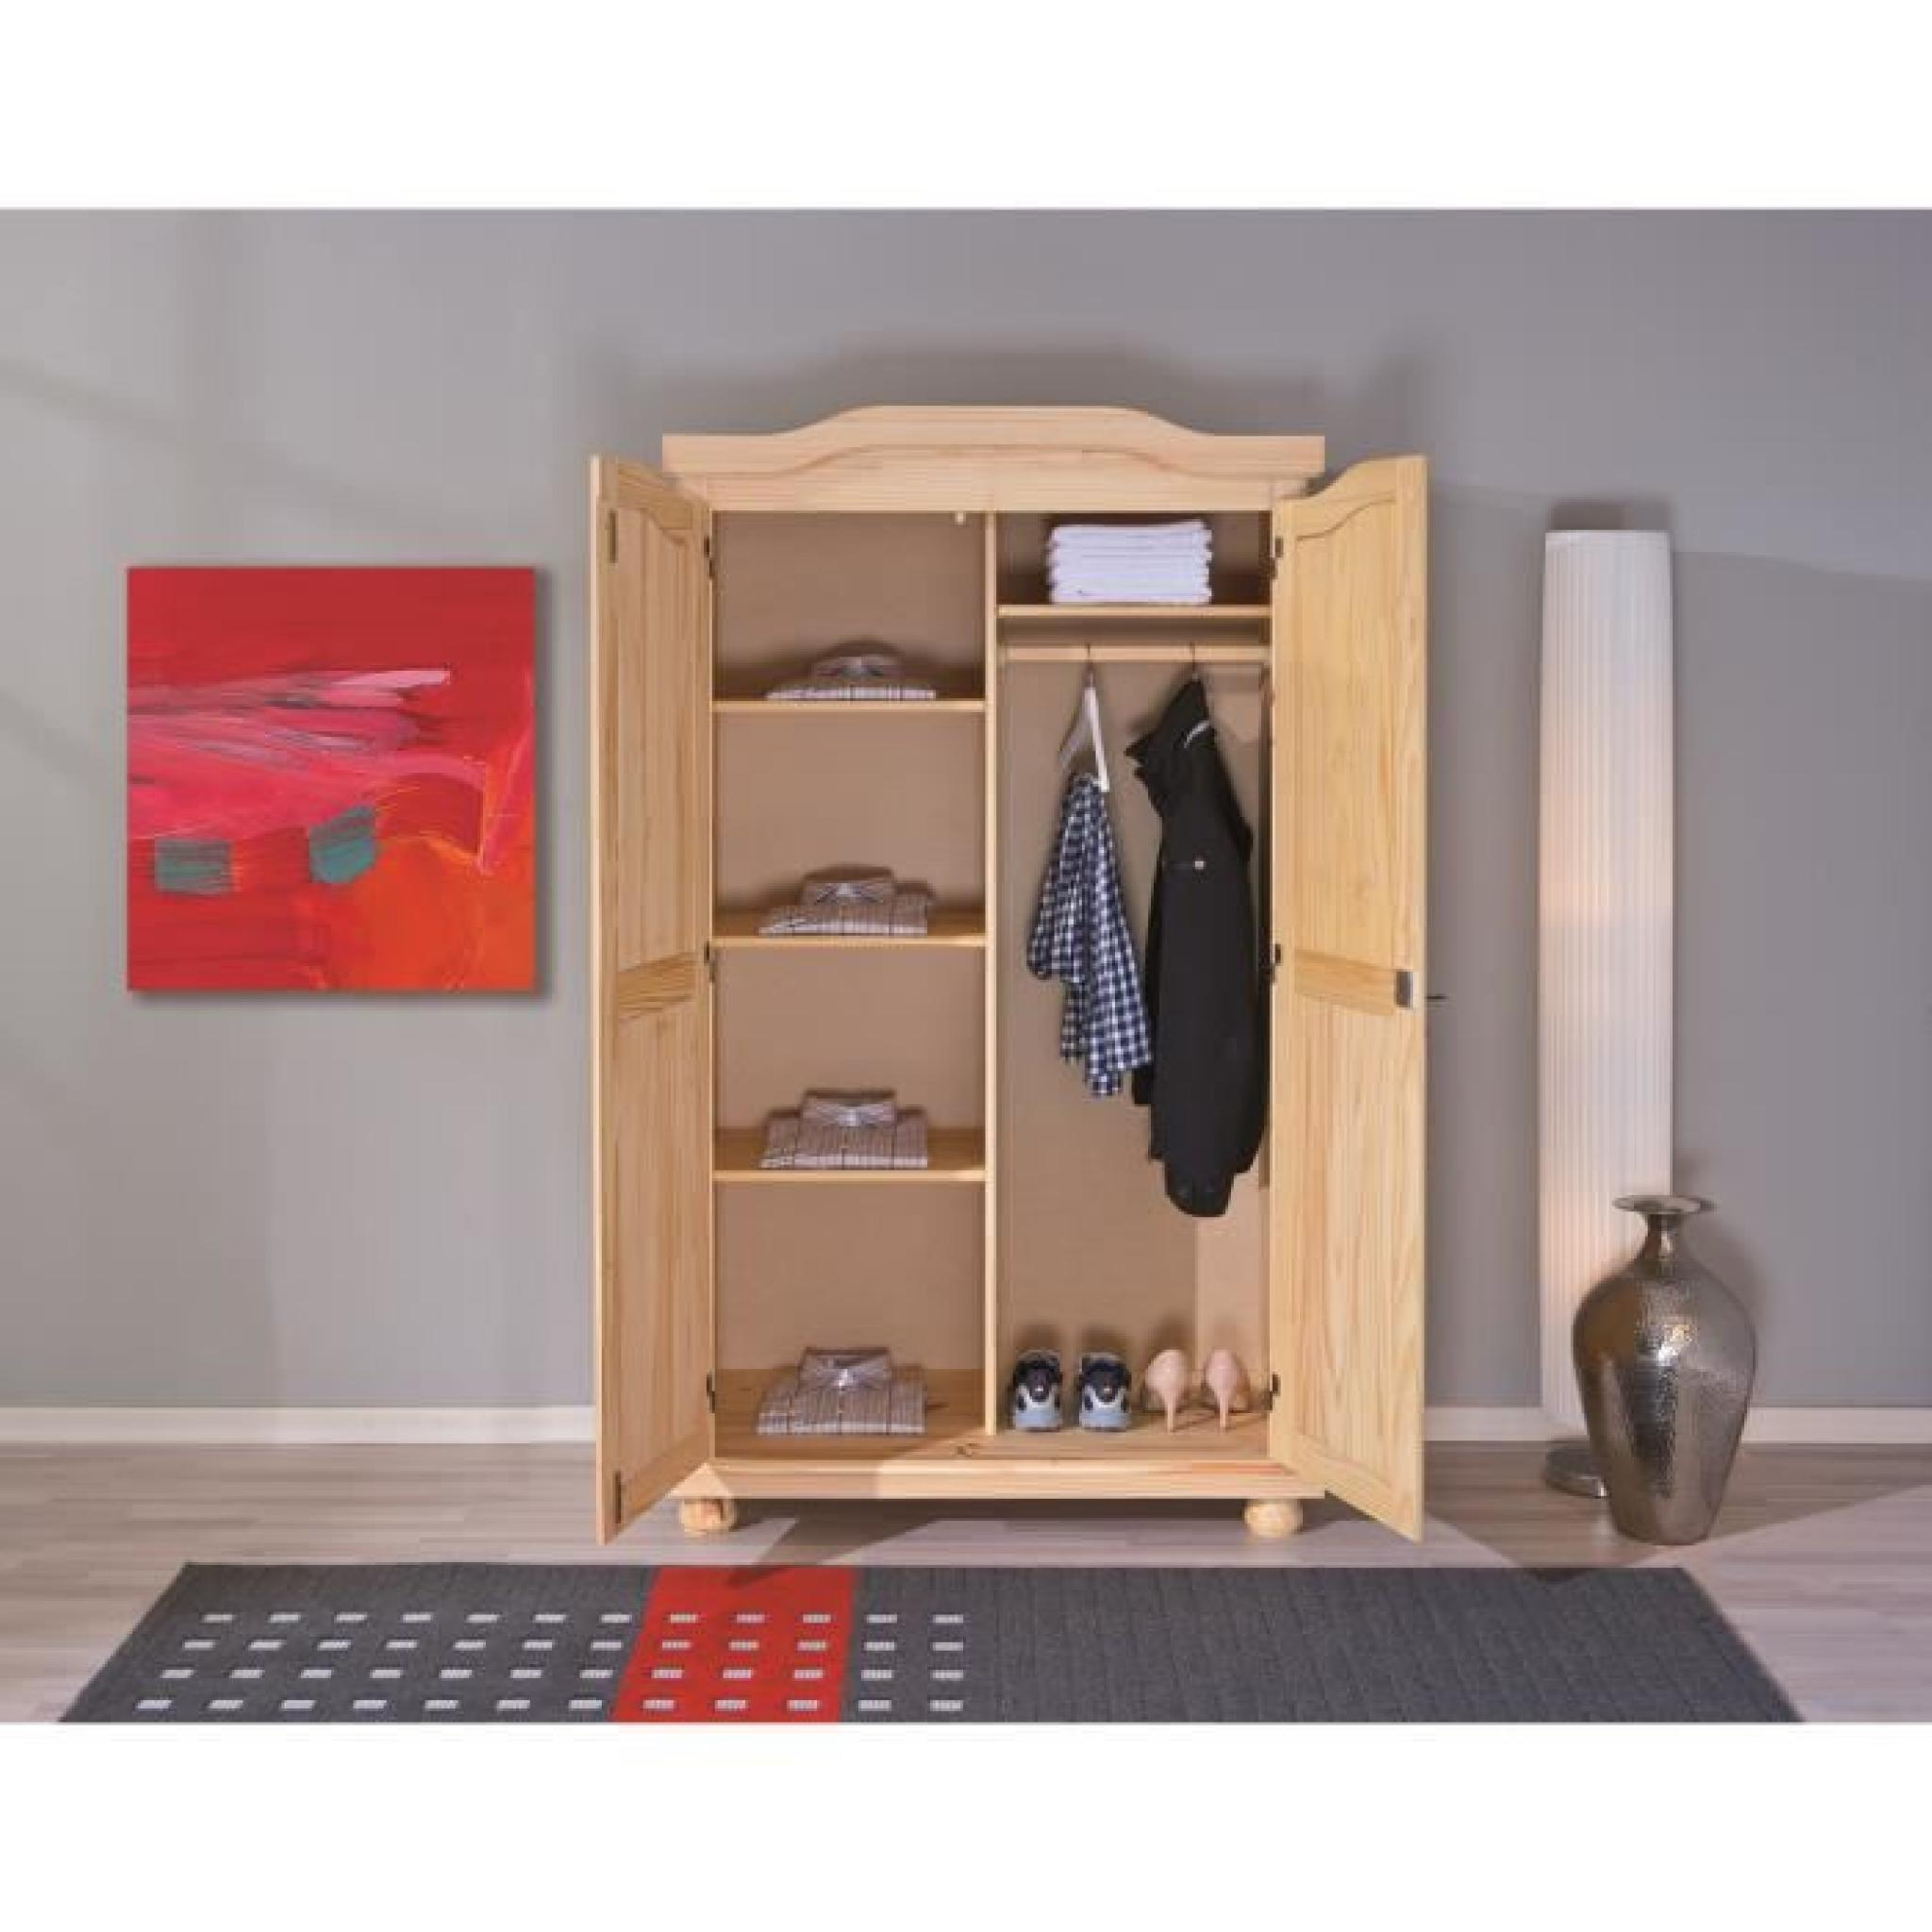 armoire rustique 2 portes en bois massif achat vente. Black Bedroom Furniture Sets. Home Design Ideas